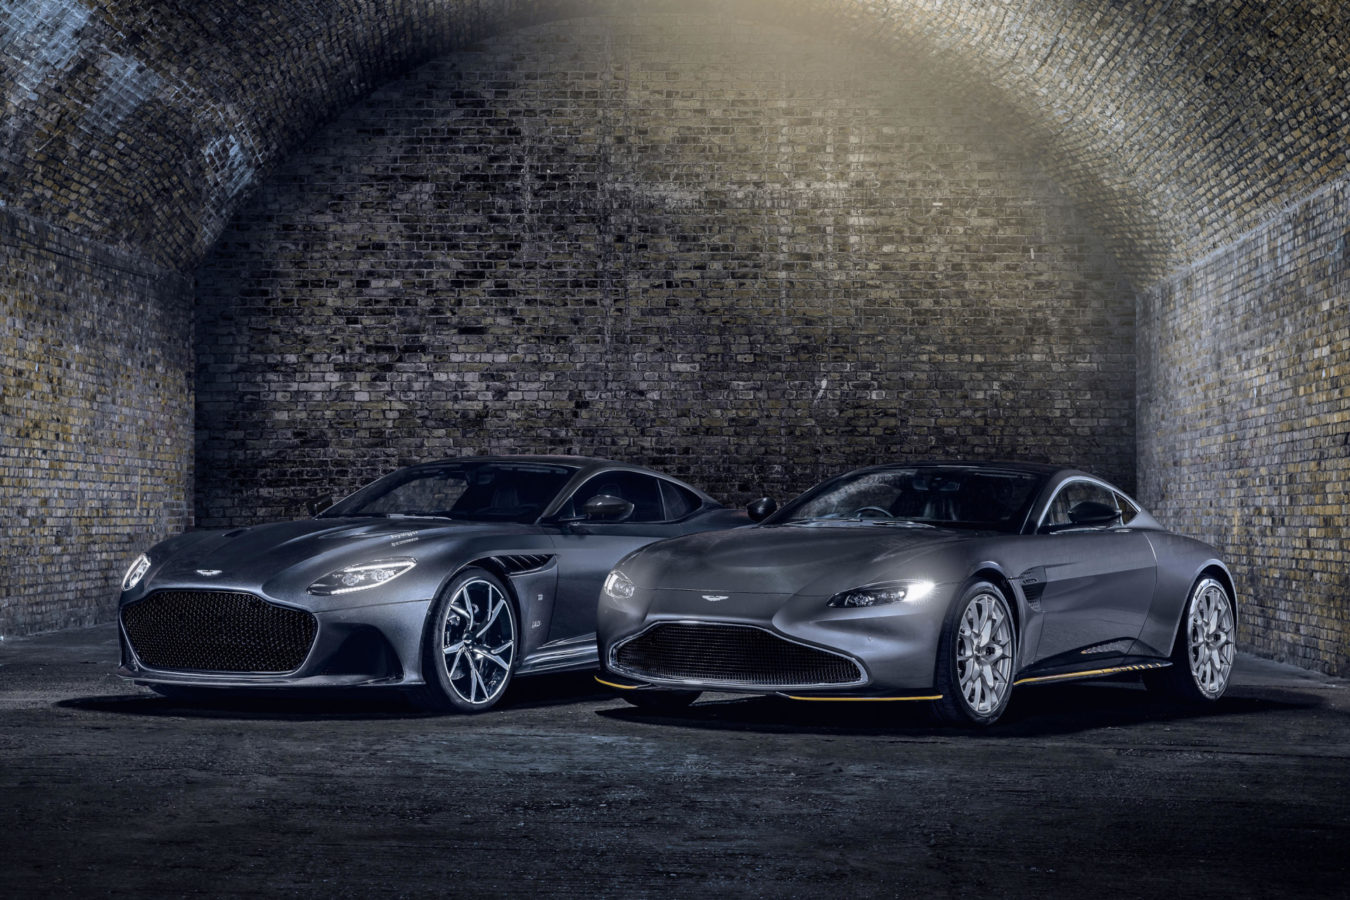 Aston Martin To Launch Two New Limited Edition Cars Inspired By The World Of James Bond